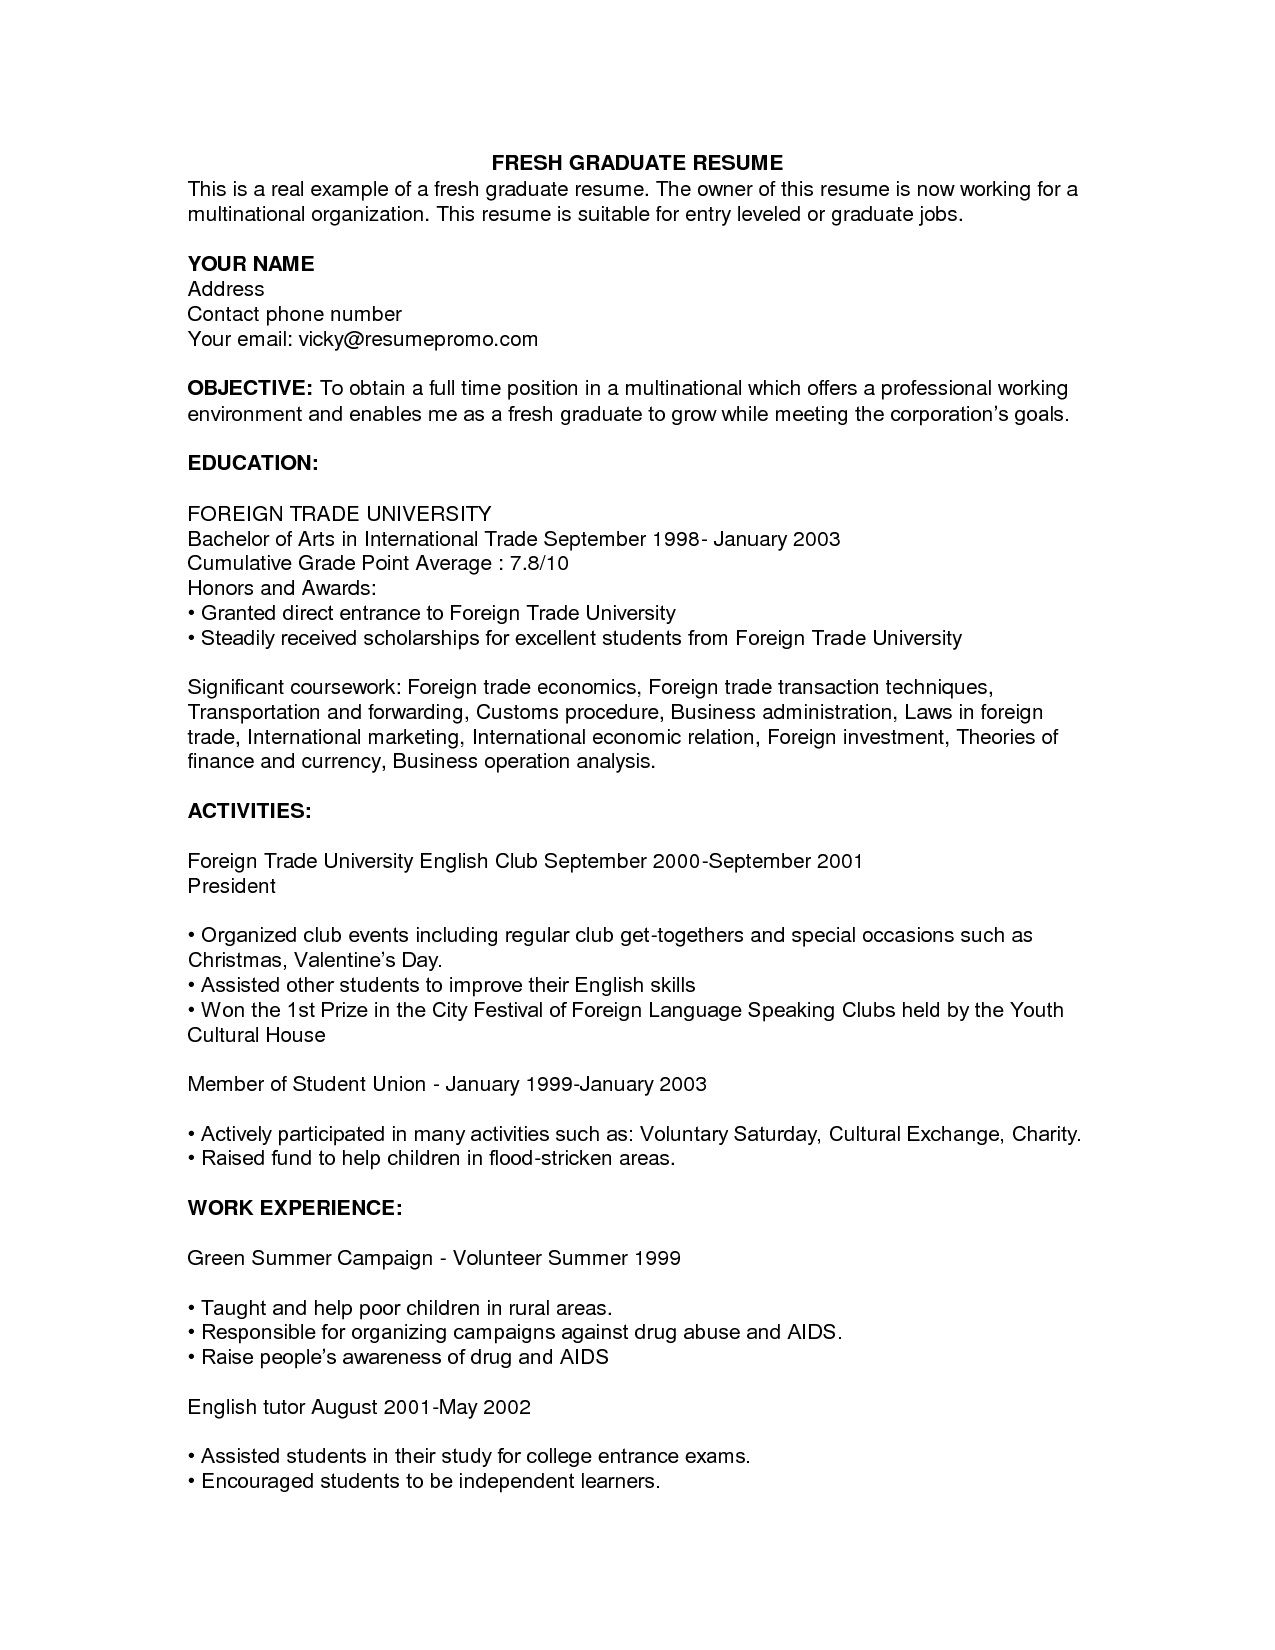 Beautiful 1 Year Experience Resume Format For Java Tall 1 Year Experience Resume Format For Java Developer Shaped 11x17 Poster Template 1930s Newspaper Template Young 2 Page Resume Format Header Soft2 Week Schedule Template Jobresumesample.com ..